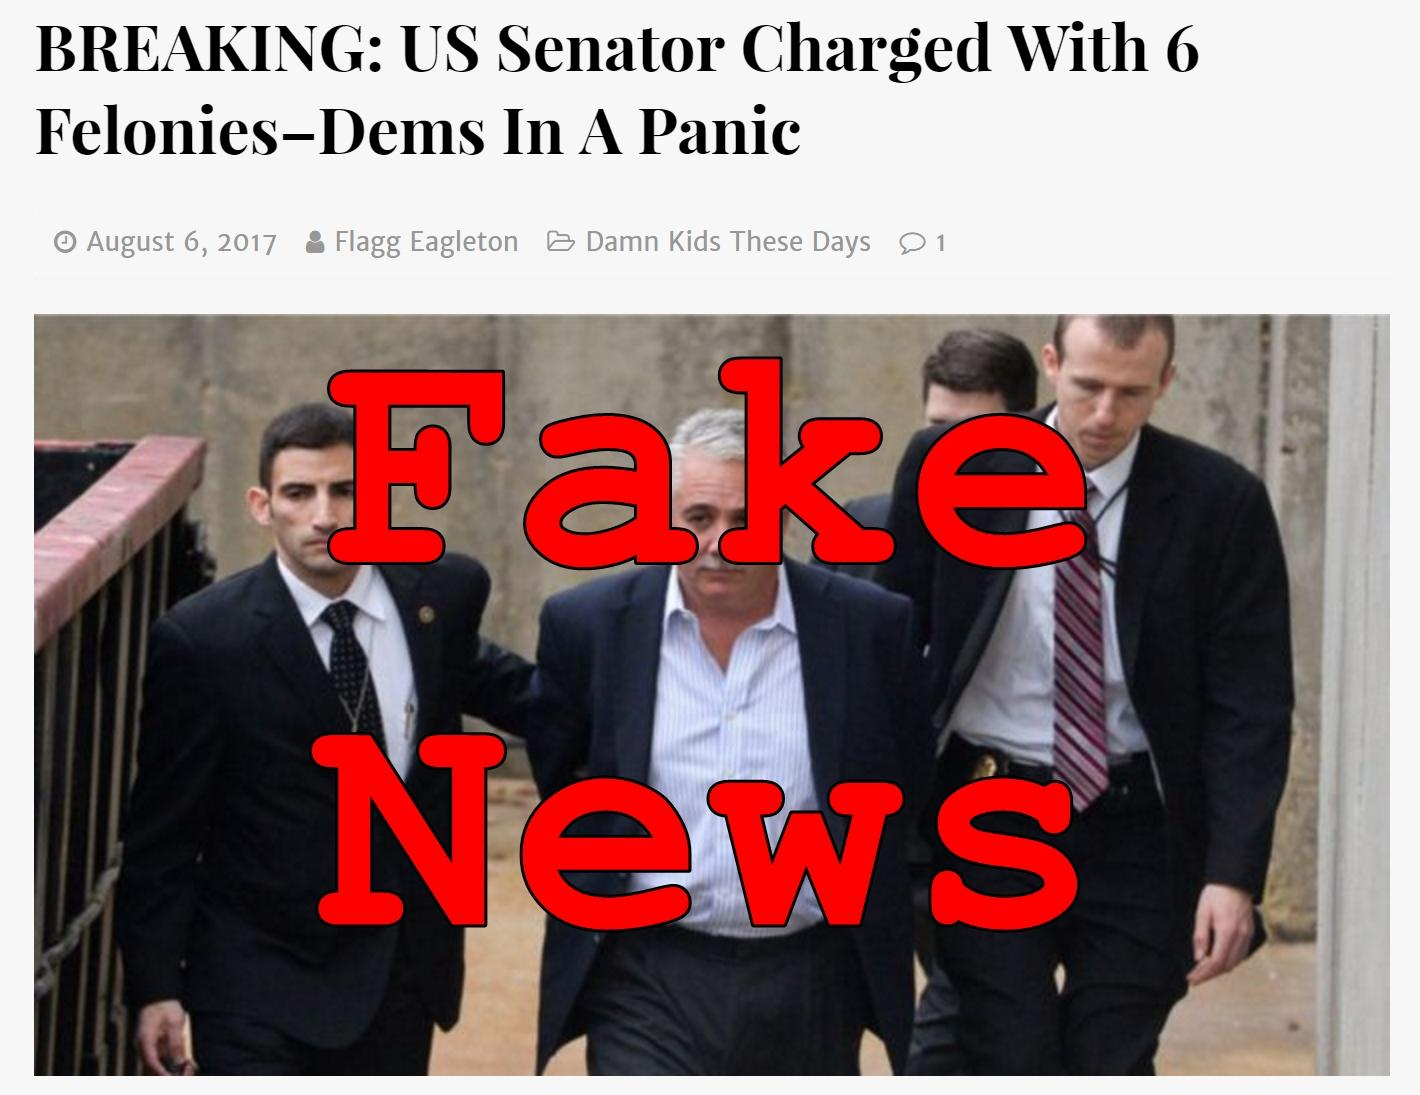 Fake News: US Senator NOT Charged With 6 Felonies